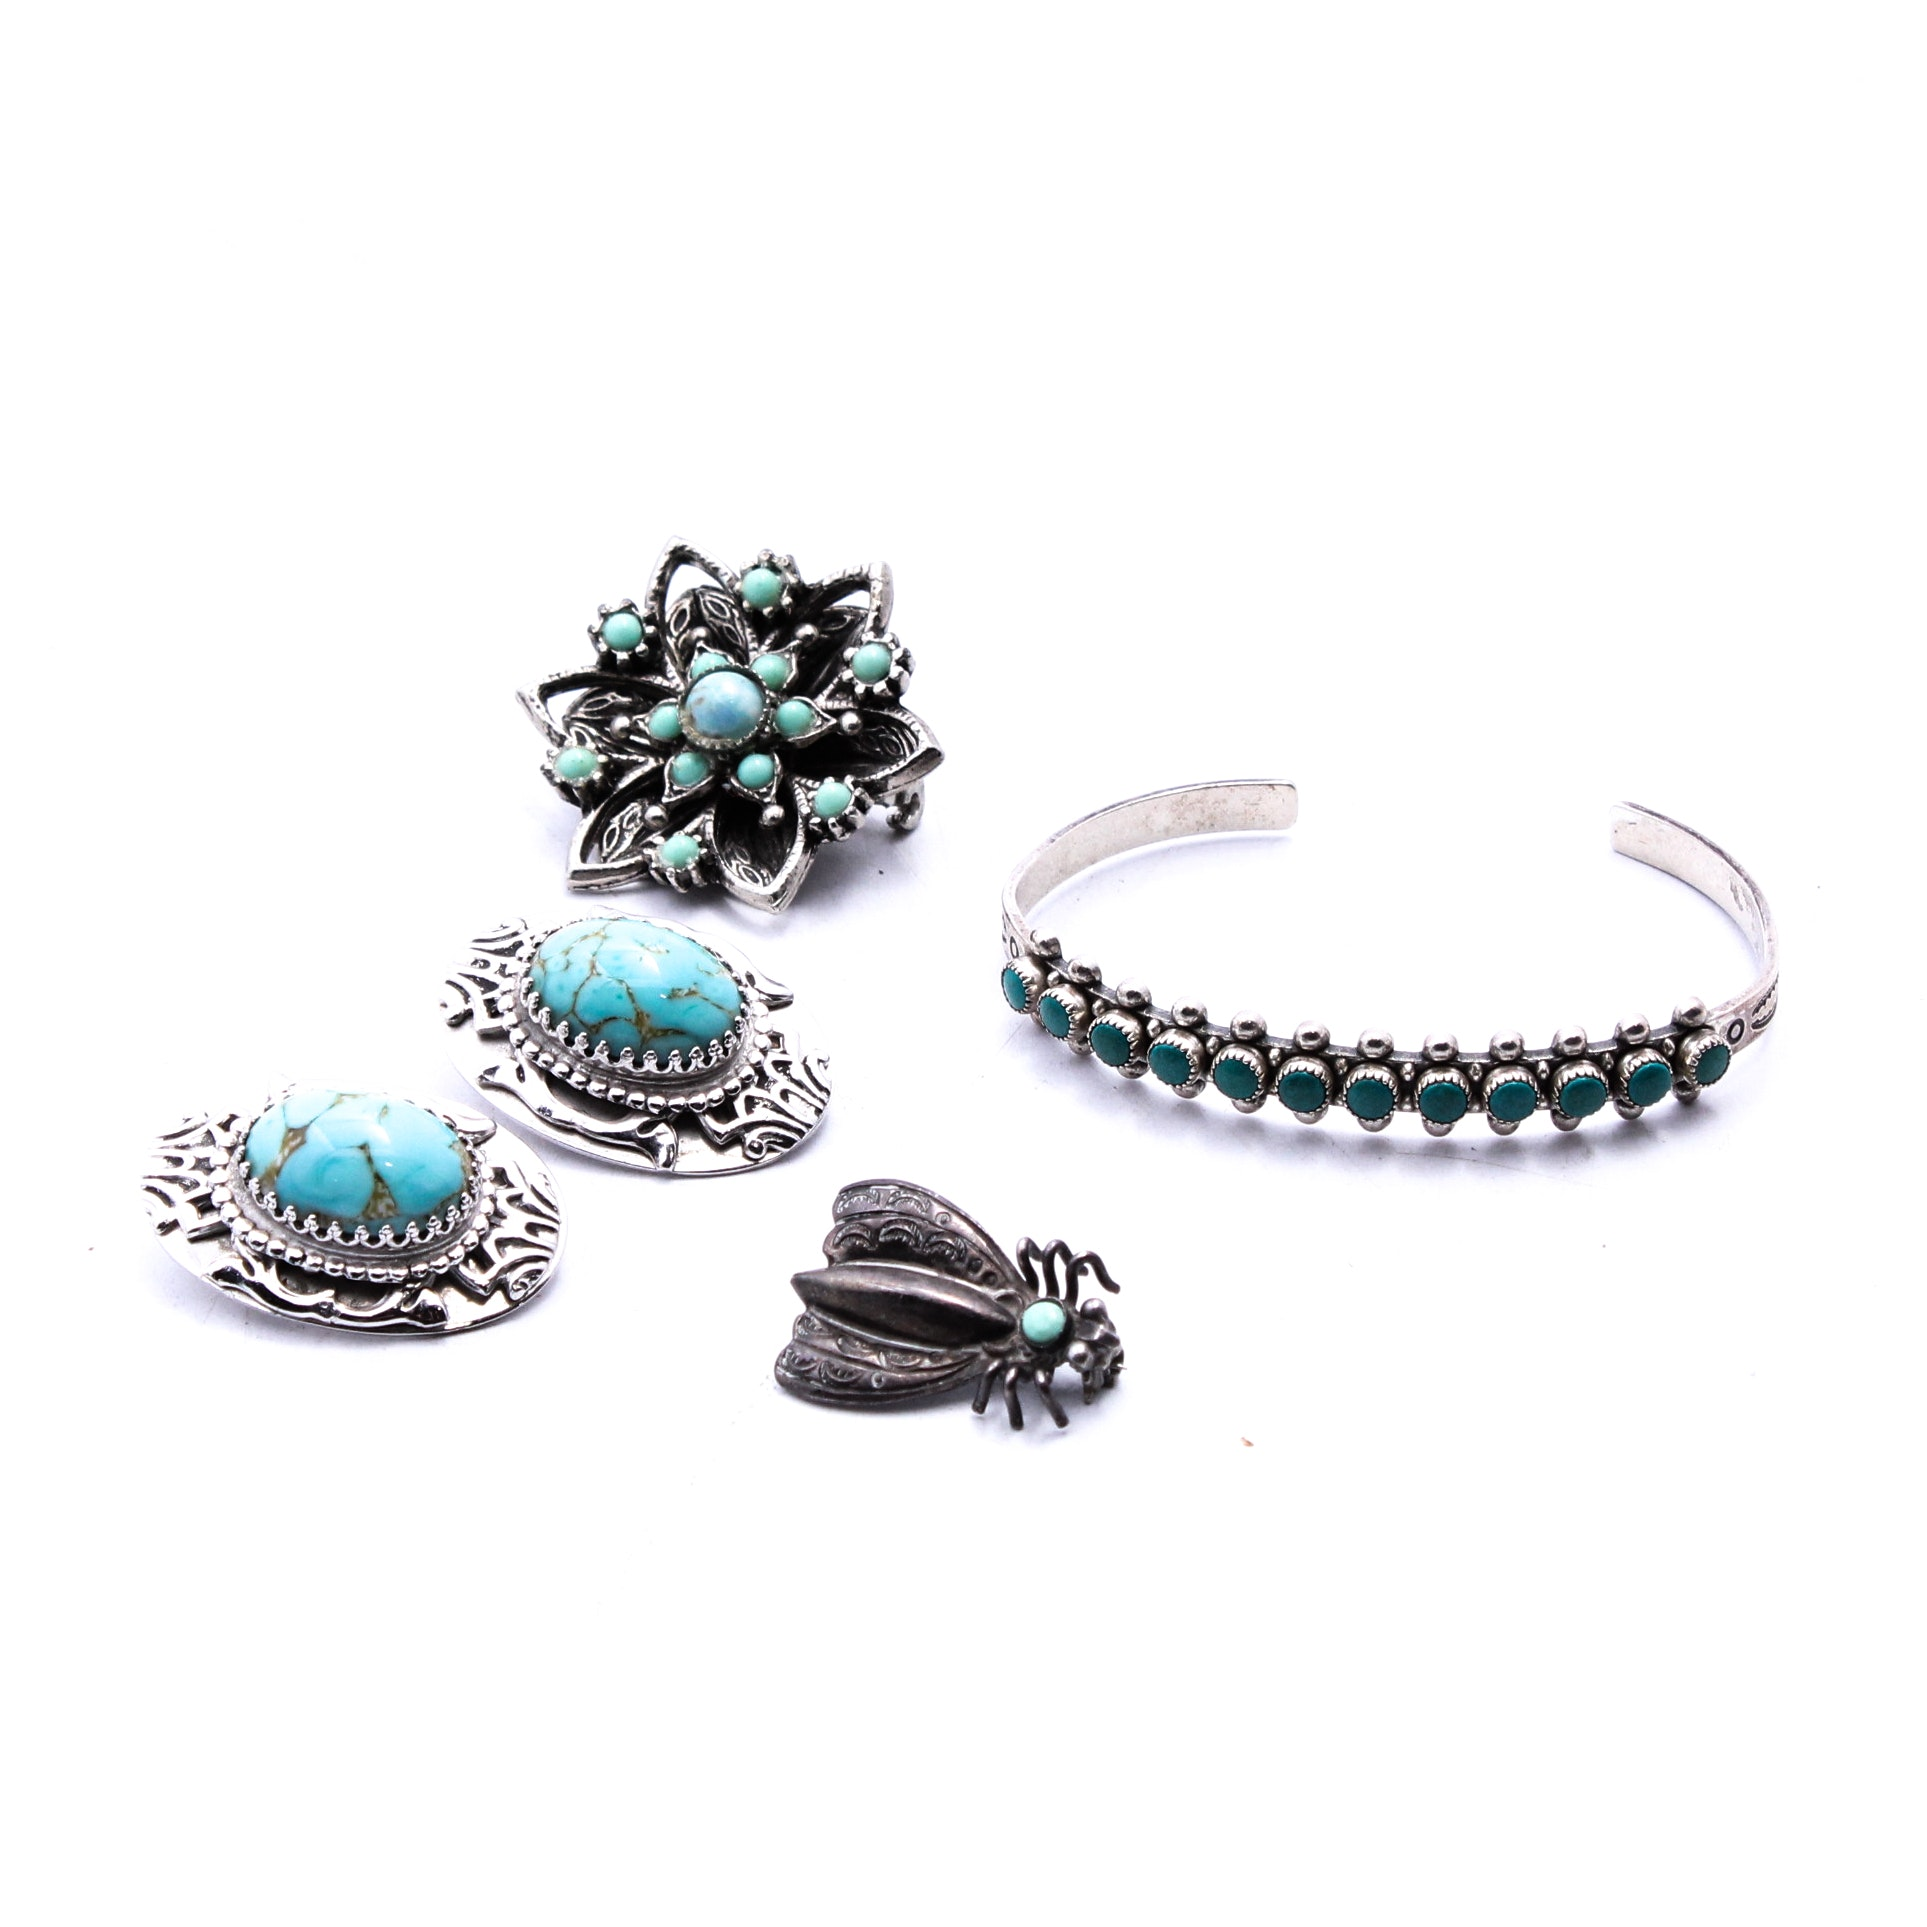 Sterling Silver and Dyed Turquoise Jewelry Collection